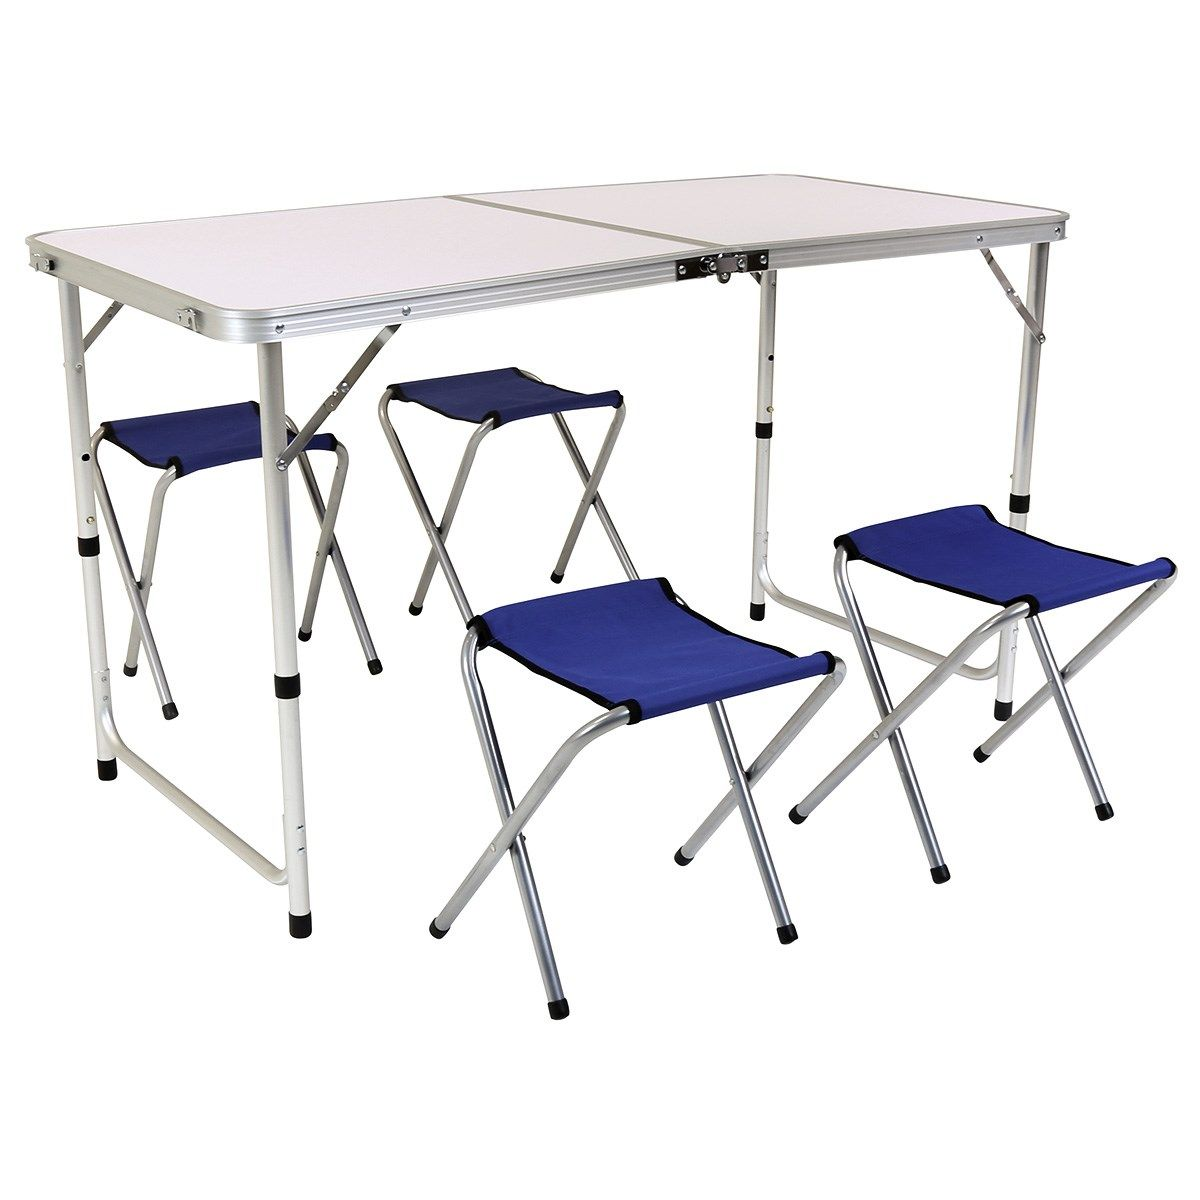 Folding Camping Table And Four Chairs Portable Picnic